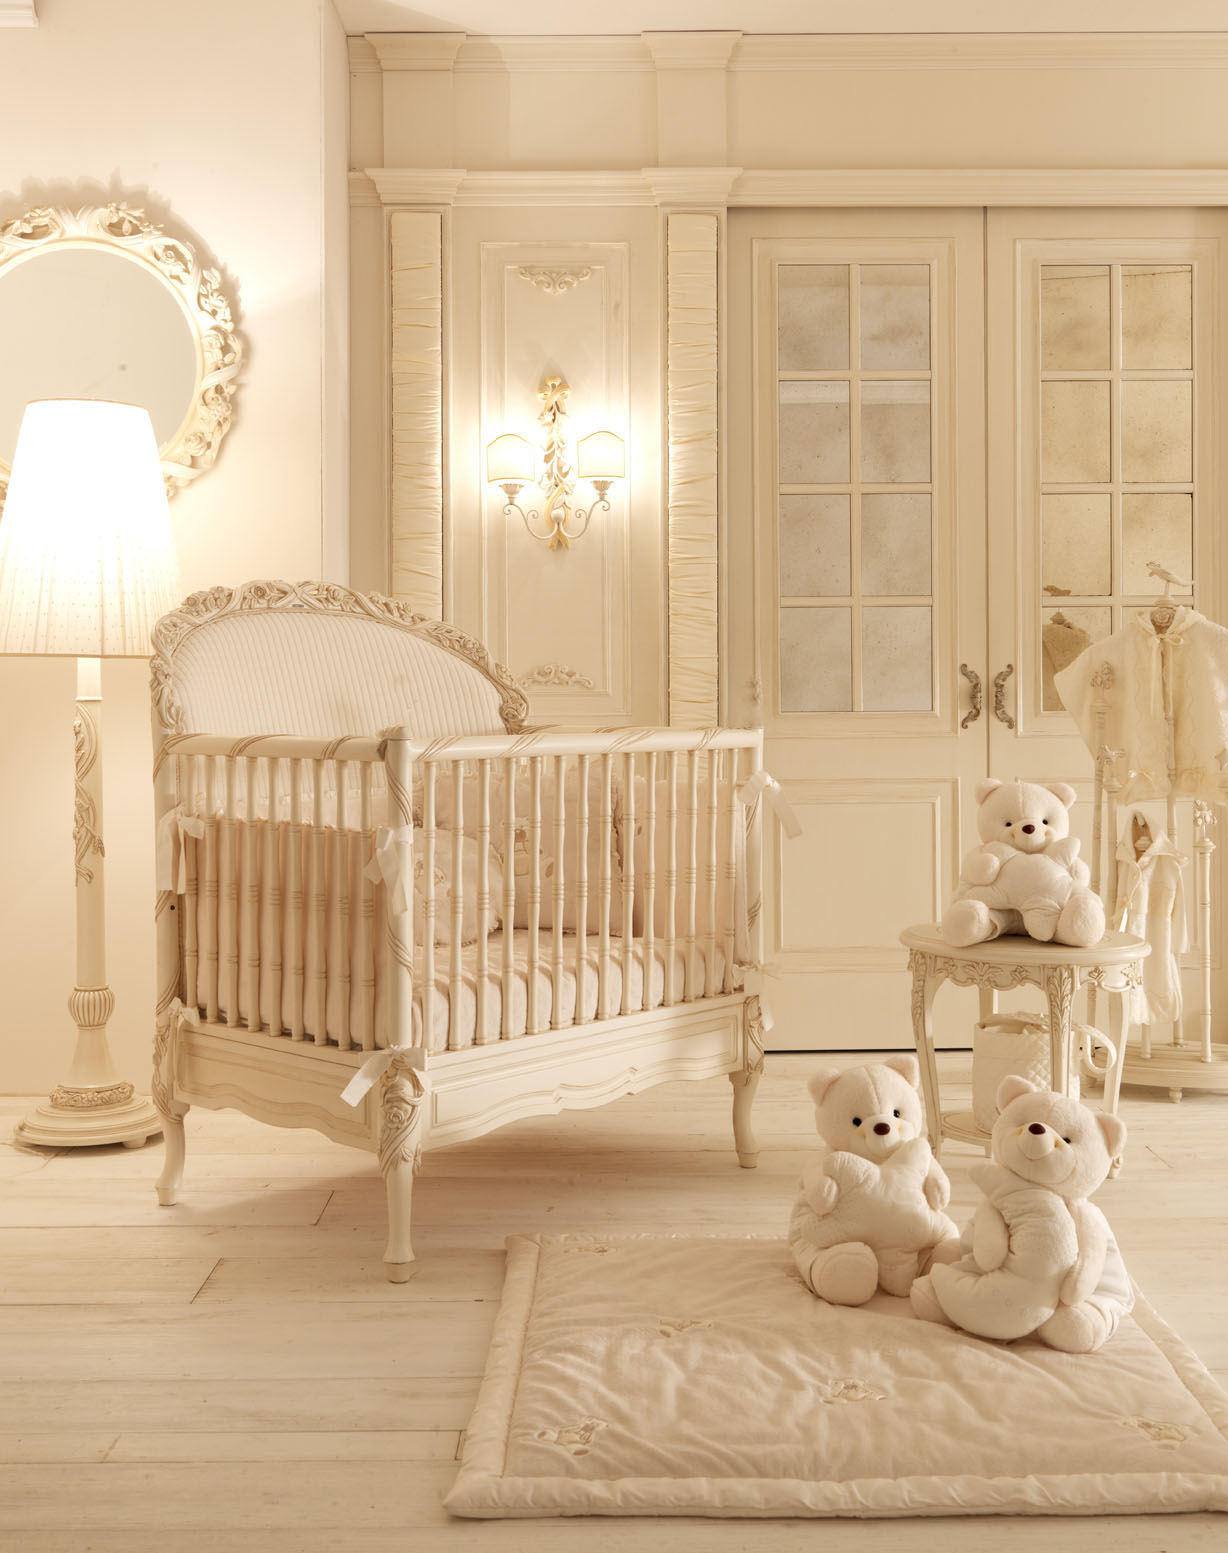 NOTTE FATATA SMALL CRIB Q VERSION